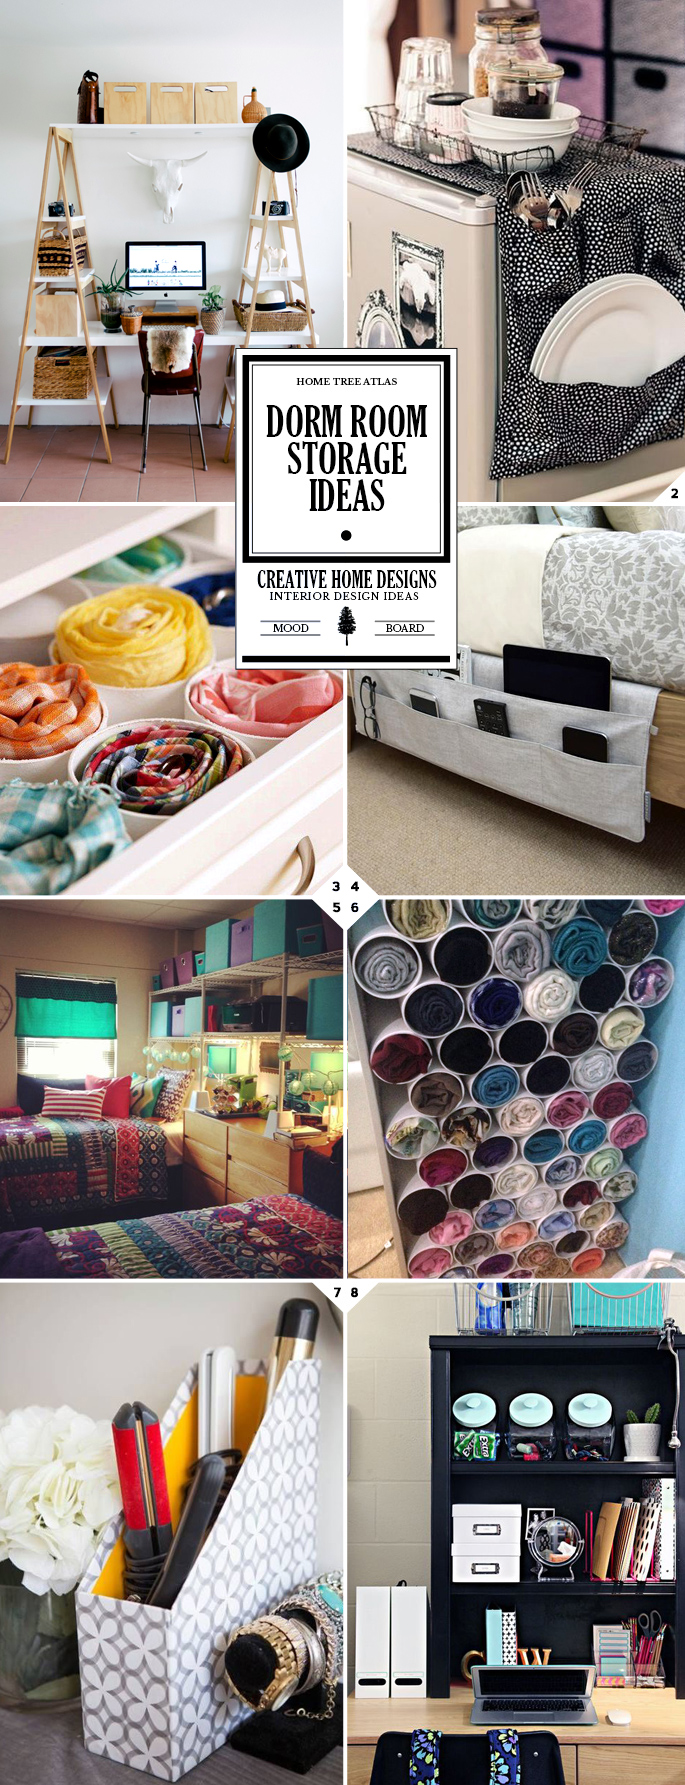 Decorating Ideas > Make The Most Of Your Space Dorm Room Storage Ideas  ~ 180207_College Dorm Room Storage Ideas